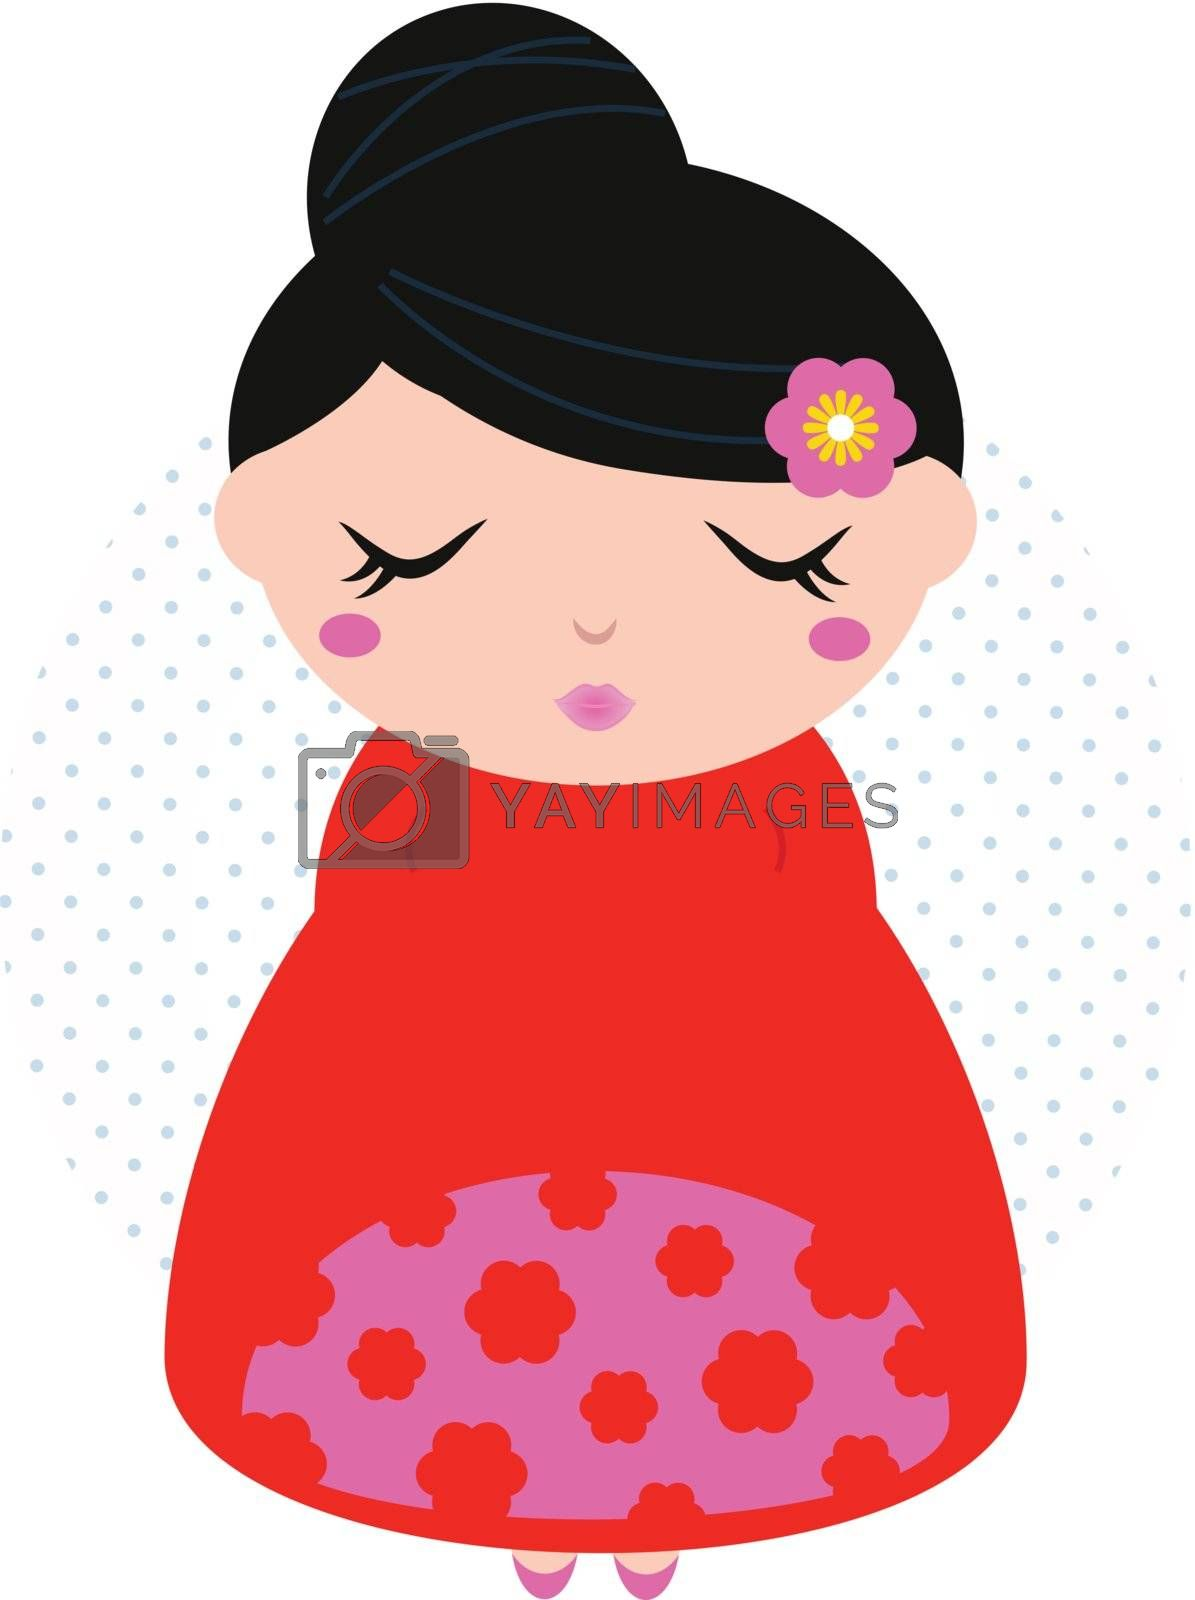 Pink and red japanese girl with black hair in dotted circle. Vector